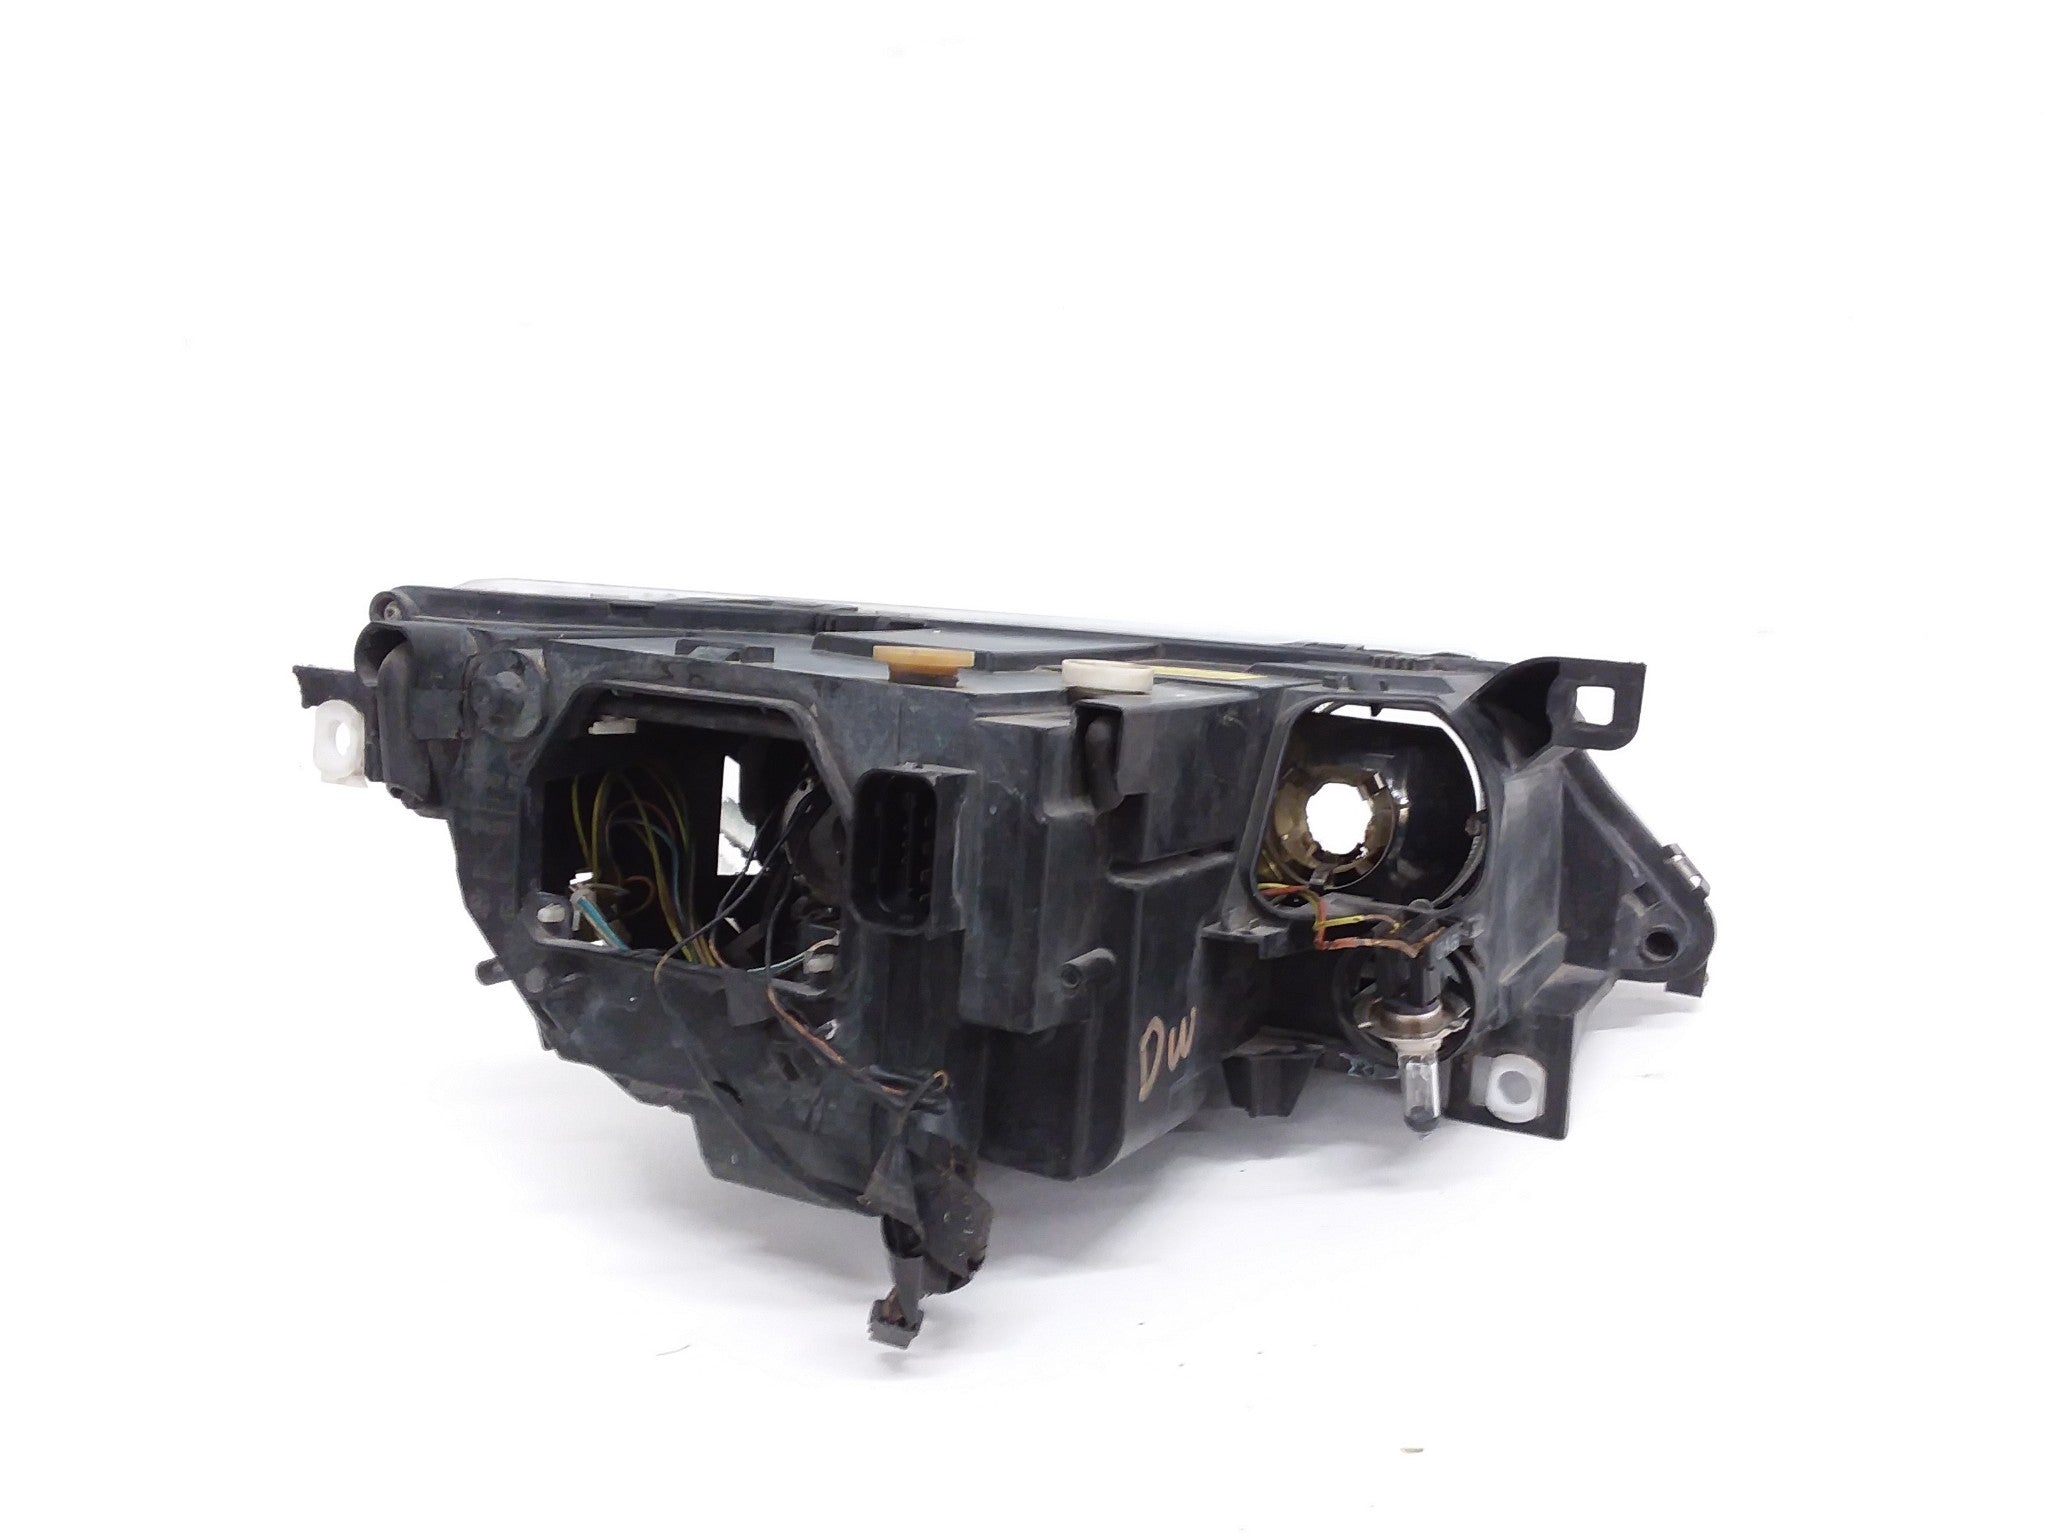 2004 2005 2006 2007 BMW 6-Series Left Side Xenon HID Headlight 7165803 OEM - Click Receive Auto Parts